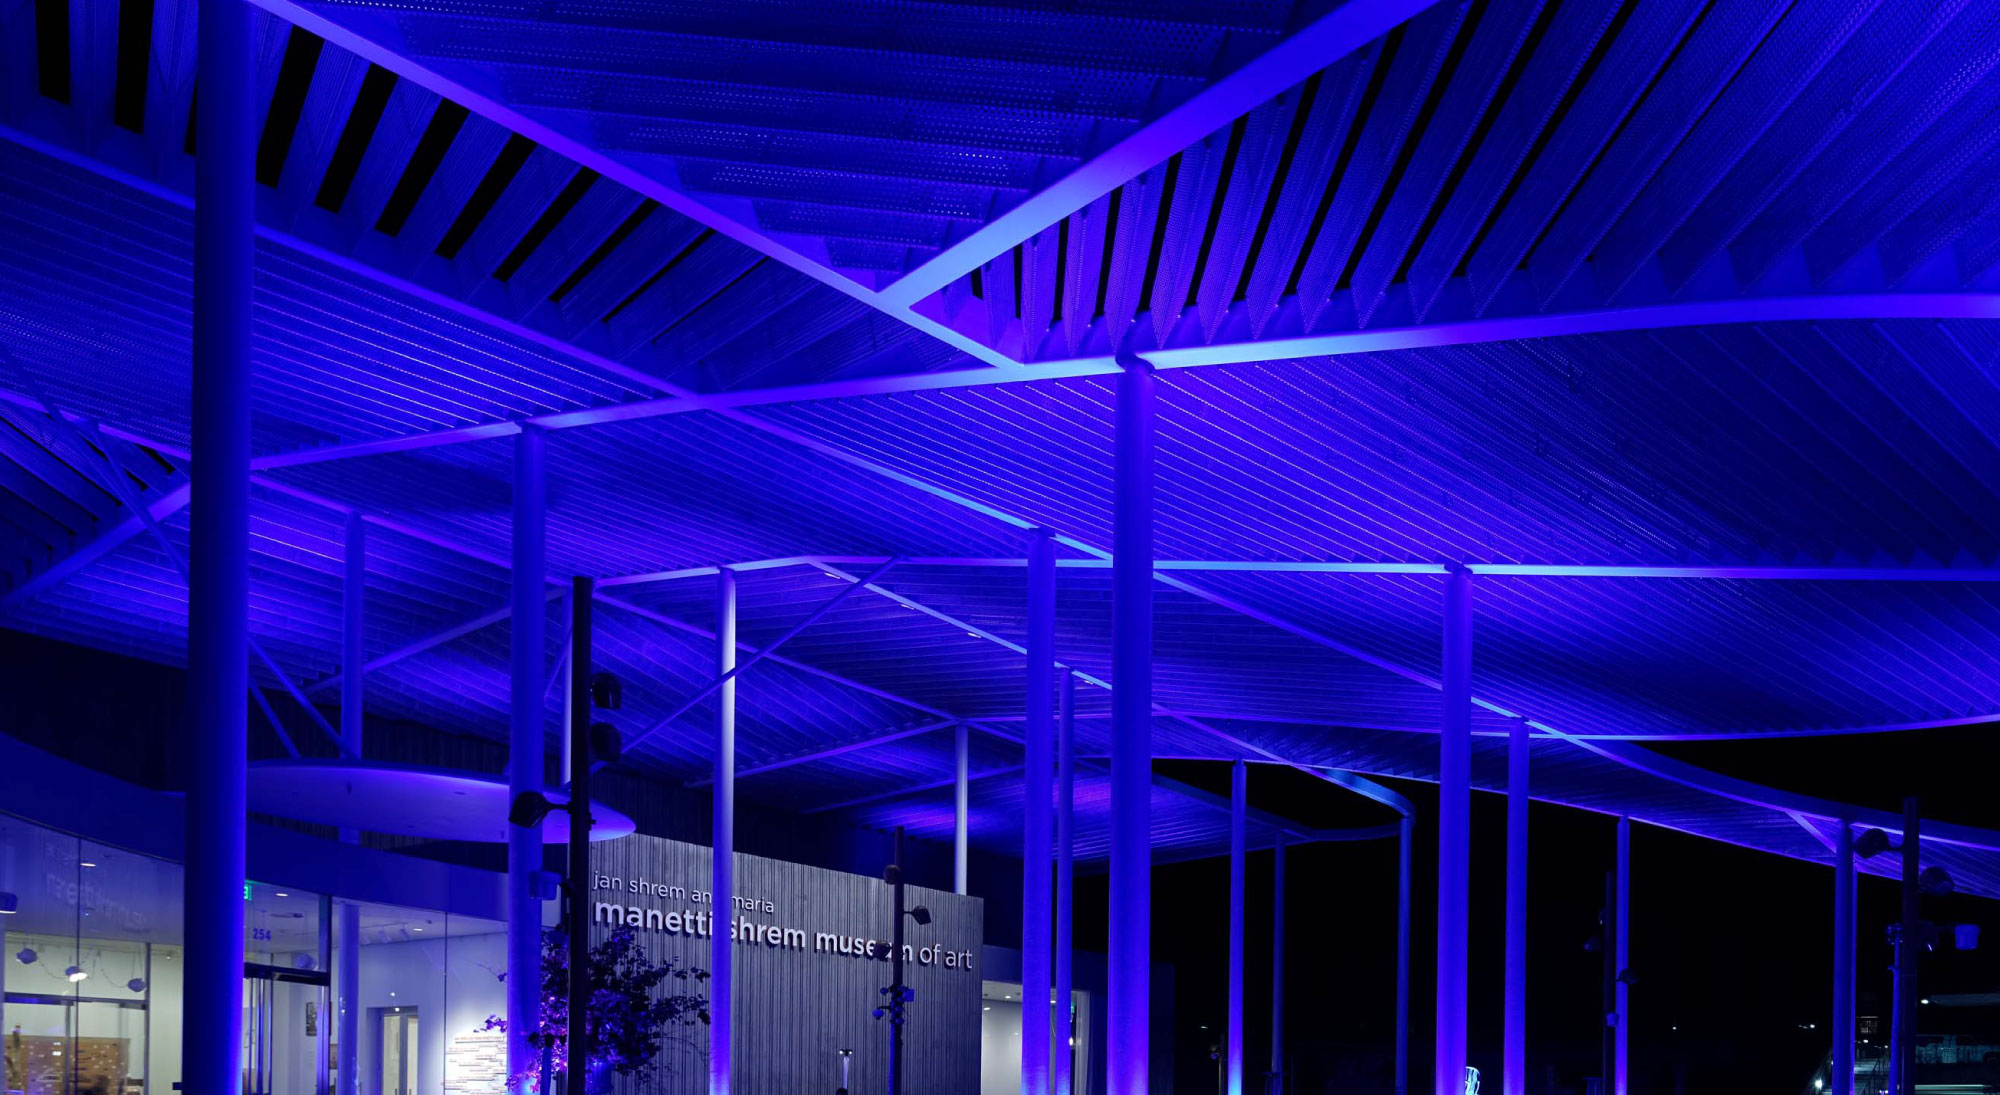 Photo of the Manetti Shrem Museum Event Plaza lit at night.